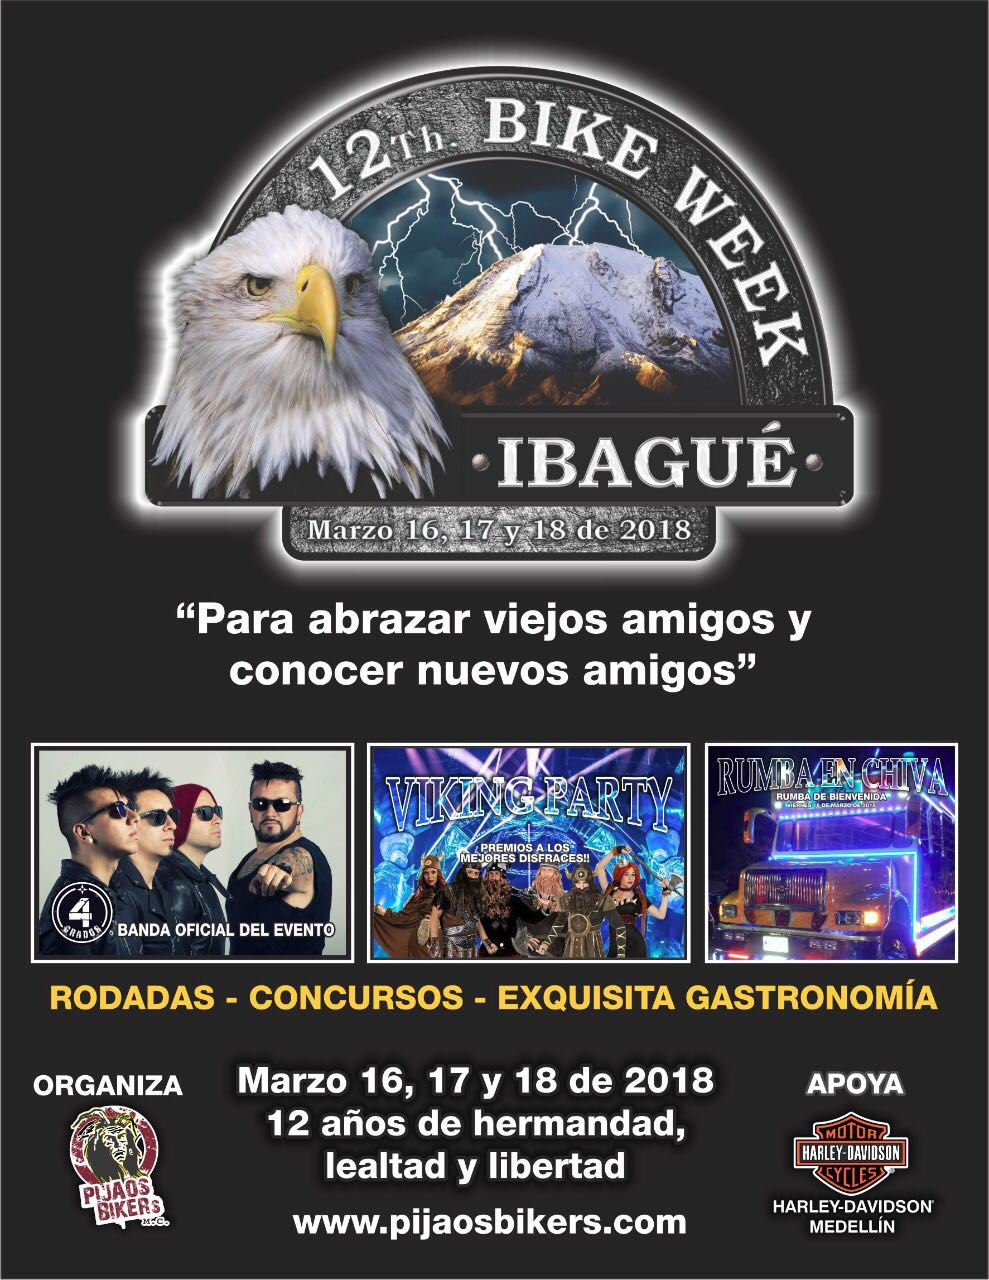 12th Bike Week Ibagué 2018